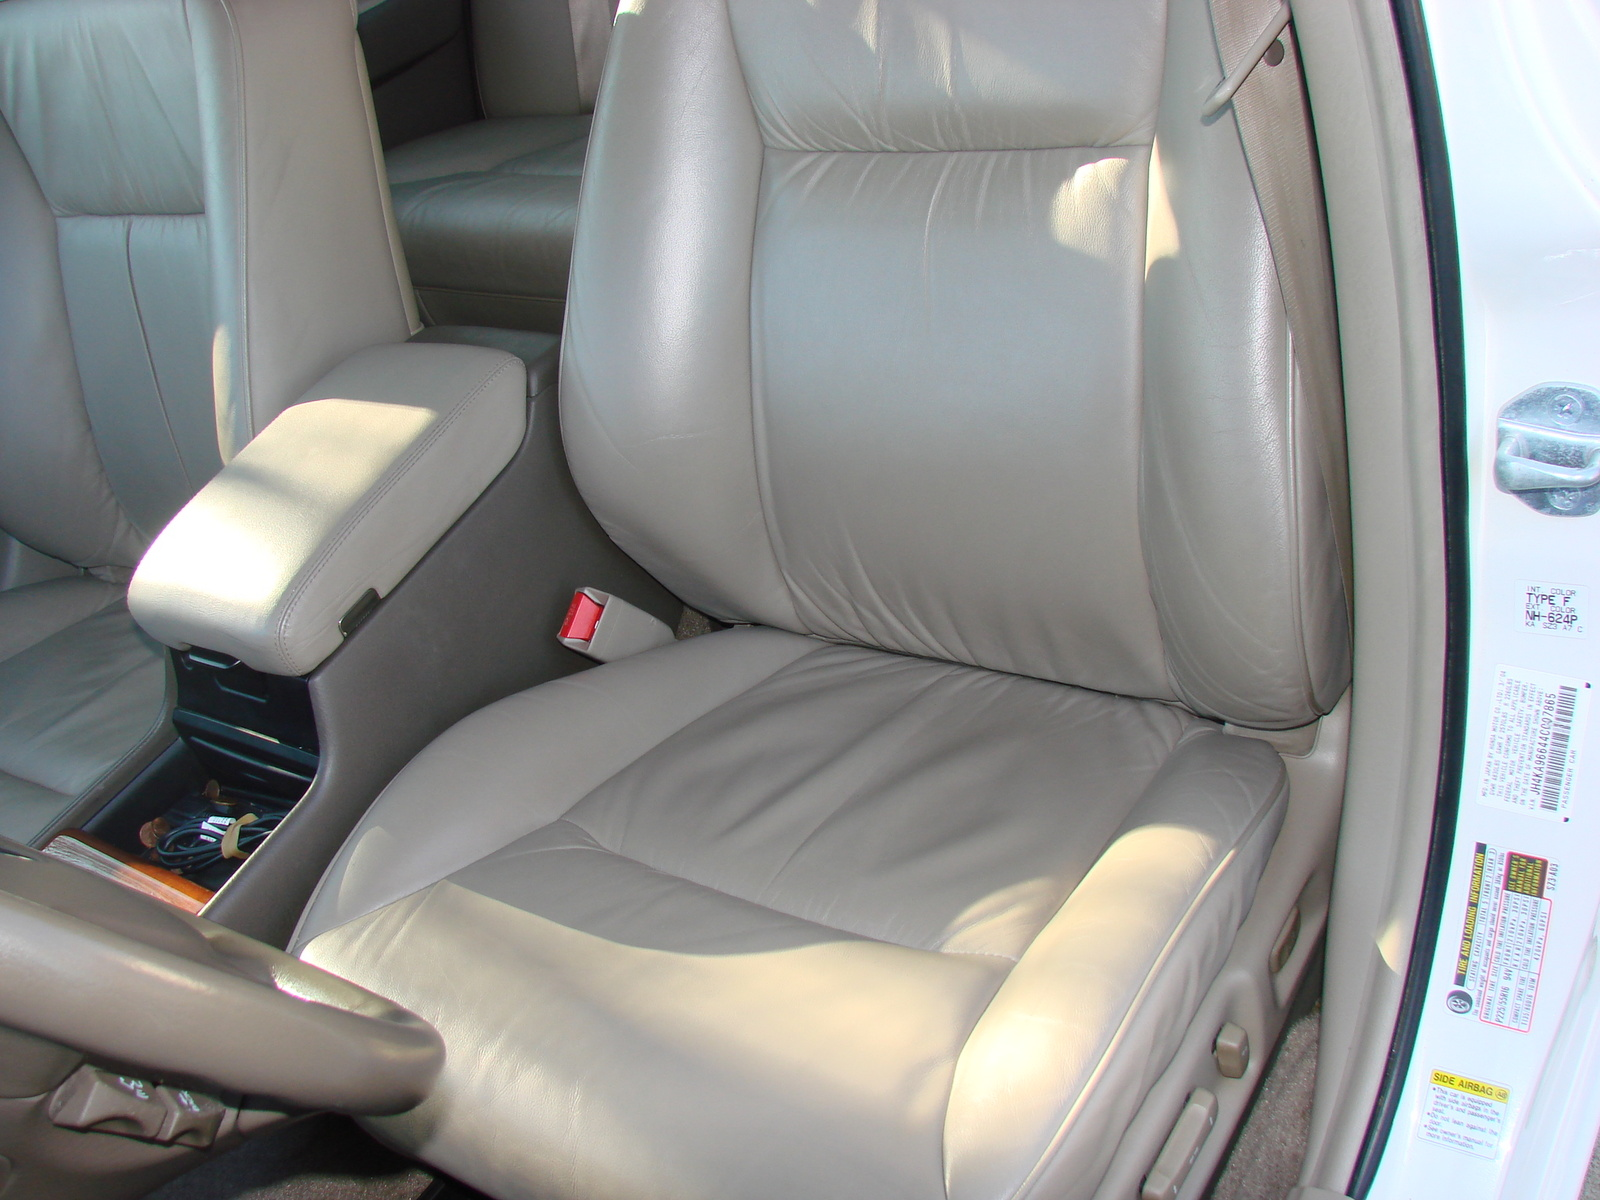 Acura Tl Type S Pic additionally Large furthermore  together with Acura Tl Spd At W Navigation Pic further D Acura Legend Sale Acura Legend. on 2000 acura rl specs